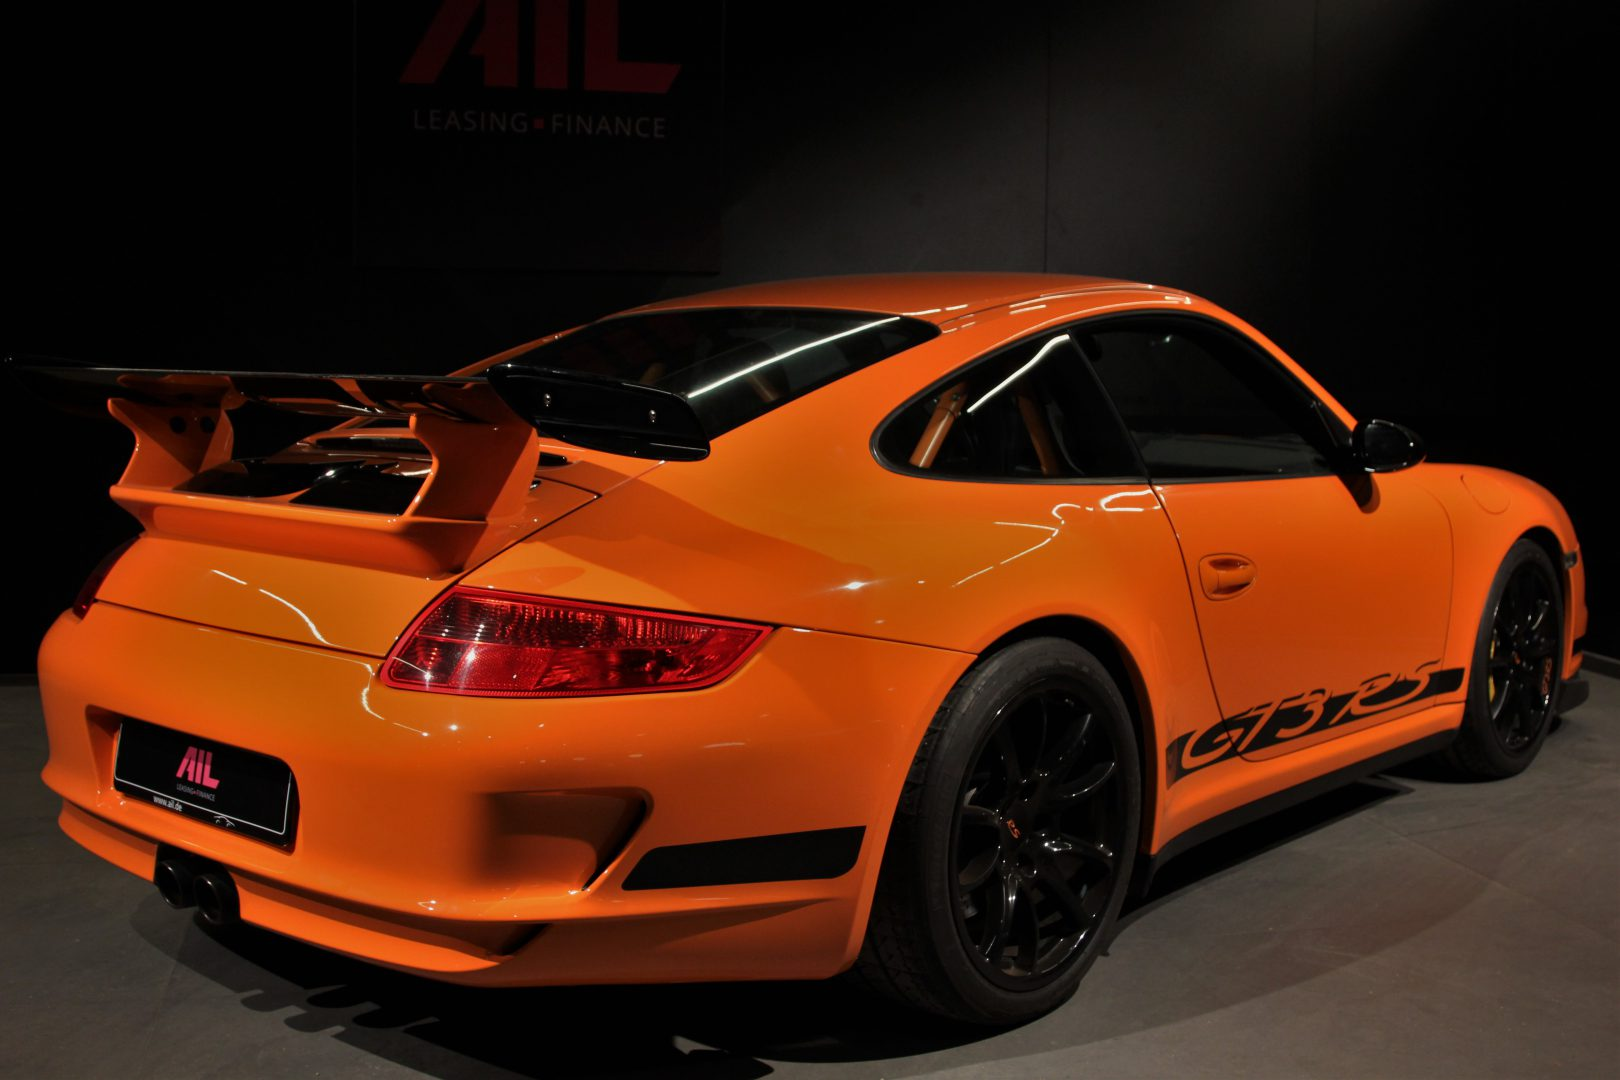 AIL Porsche 997 GT3 RS Club Sport Paket Orange 1